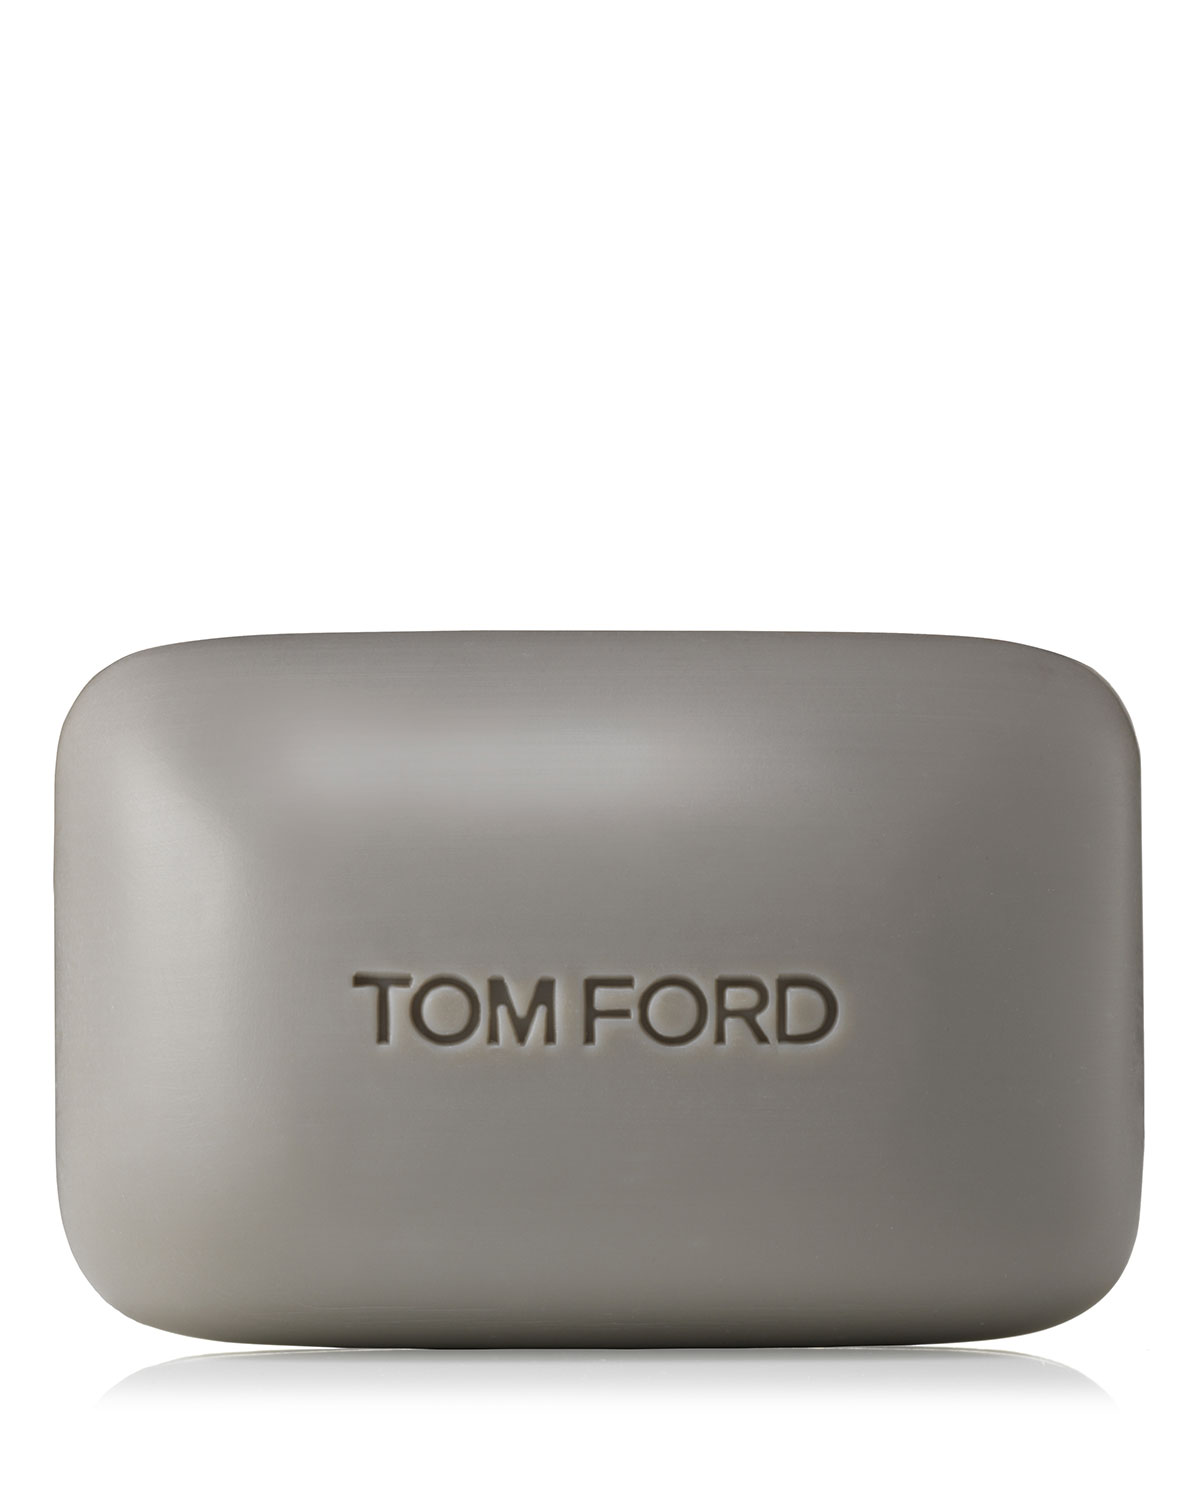 ce8a30dd TOM FORD Oud Wood Bar Soap, 5.2 oz./ 150 g | Neiman Marcus